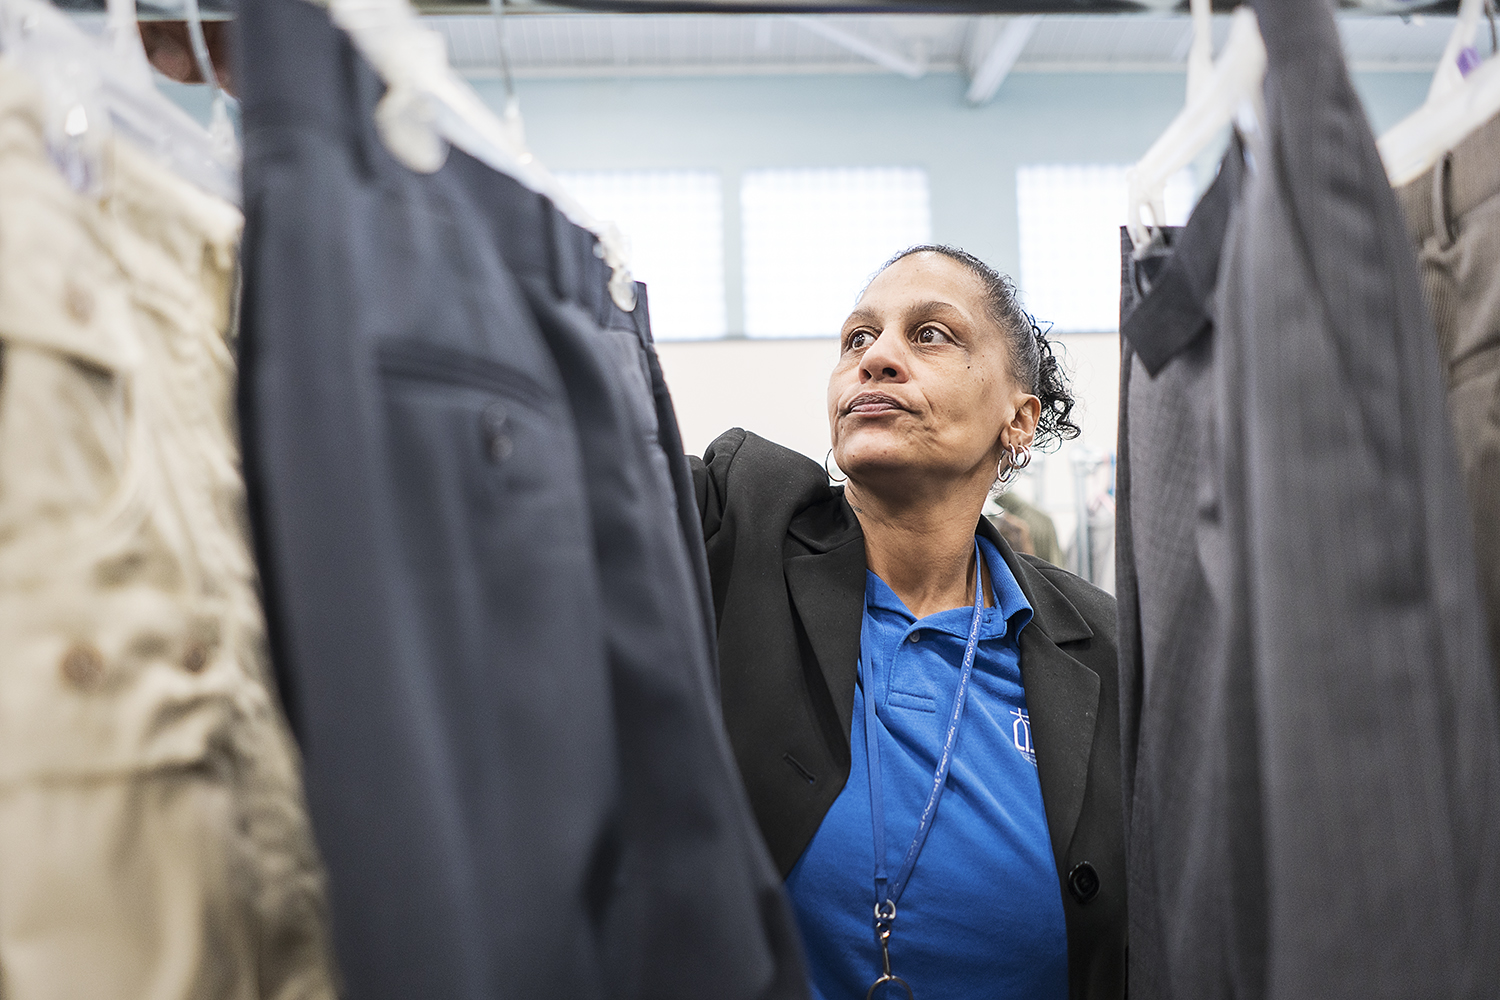 Flint, MI - Monday, December 18, 2017: Community Closet Coordinator at the Catholic Charities Center for Hope Redonna Riggs, 47, of Flint, organizes donated clothing hanging from a clothing rack.Tim Galloway for FlintSide